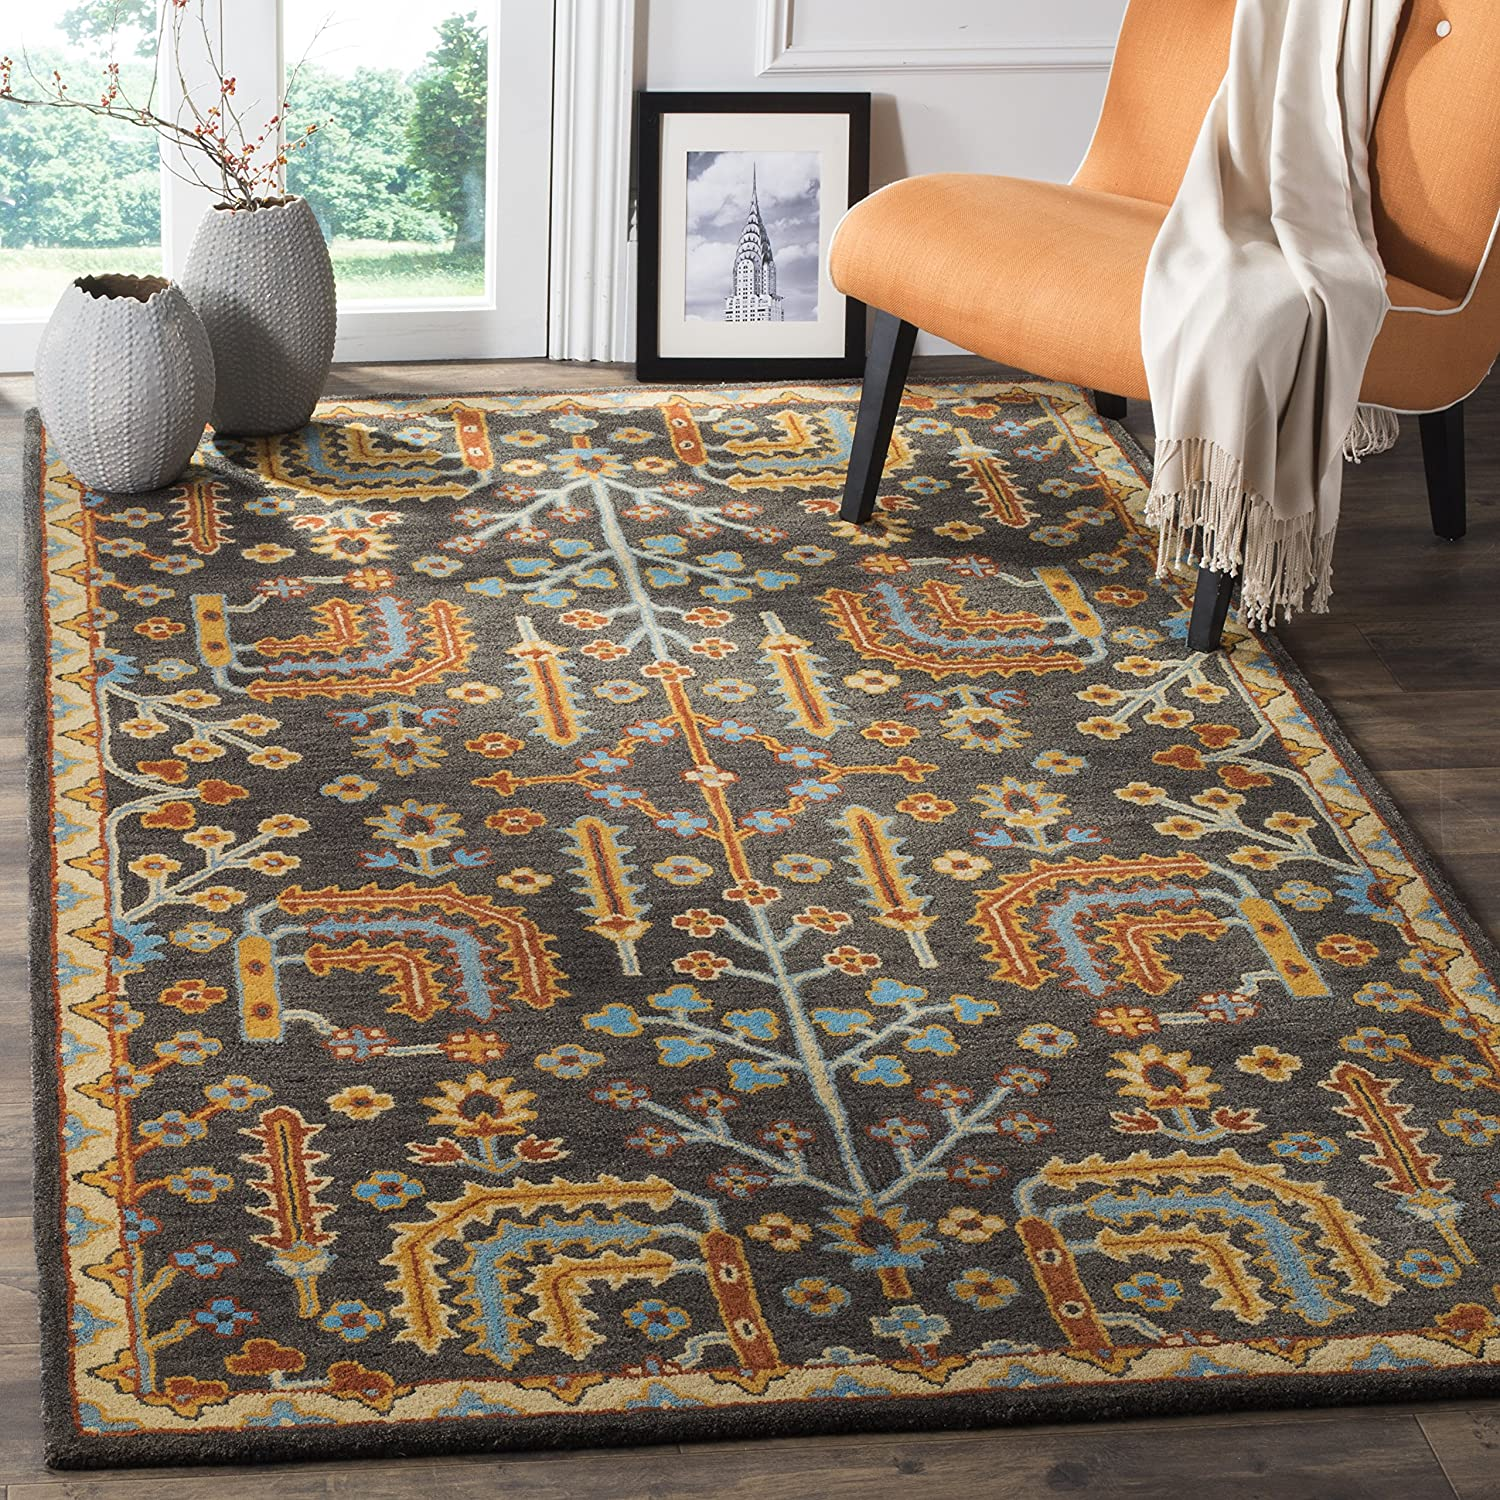 Safavieh Heritage Collection Challenge the lowest Outstanding price HG409A Traditional Orienta Handmade